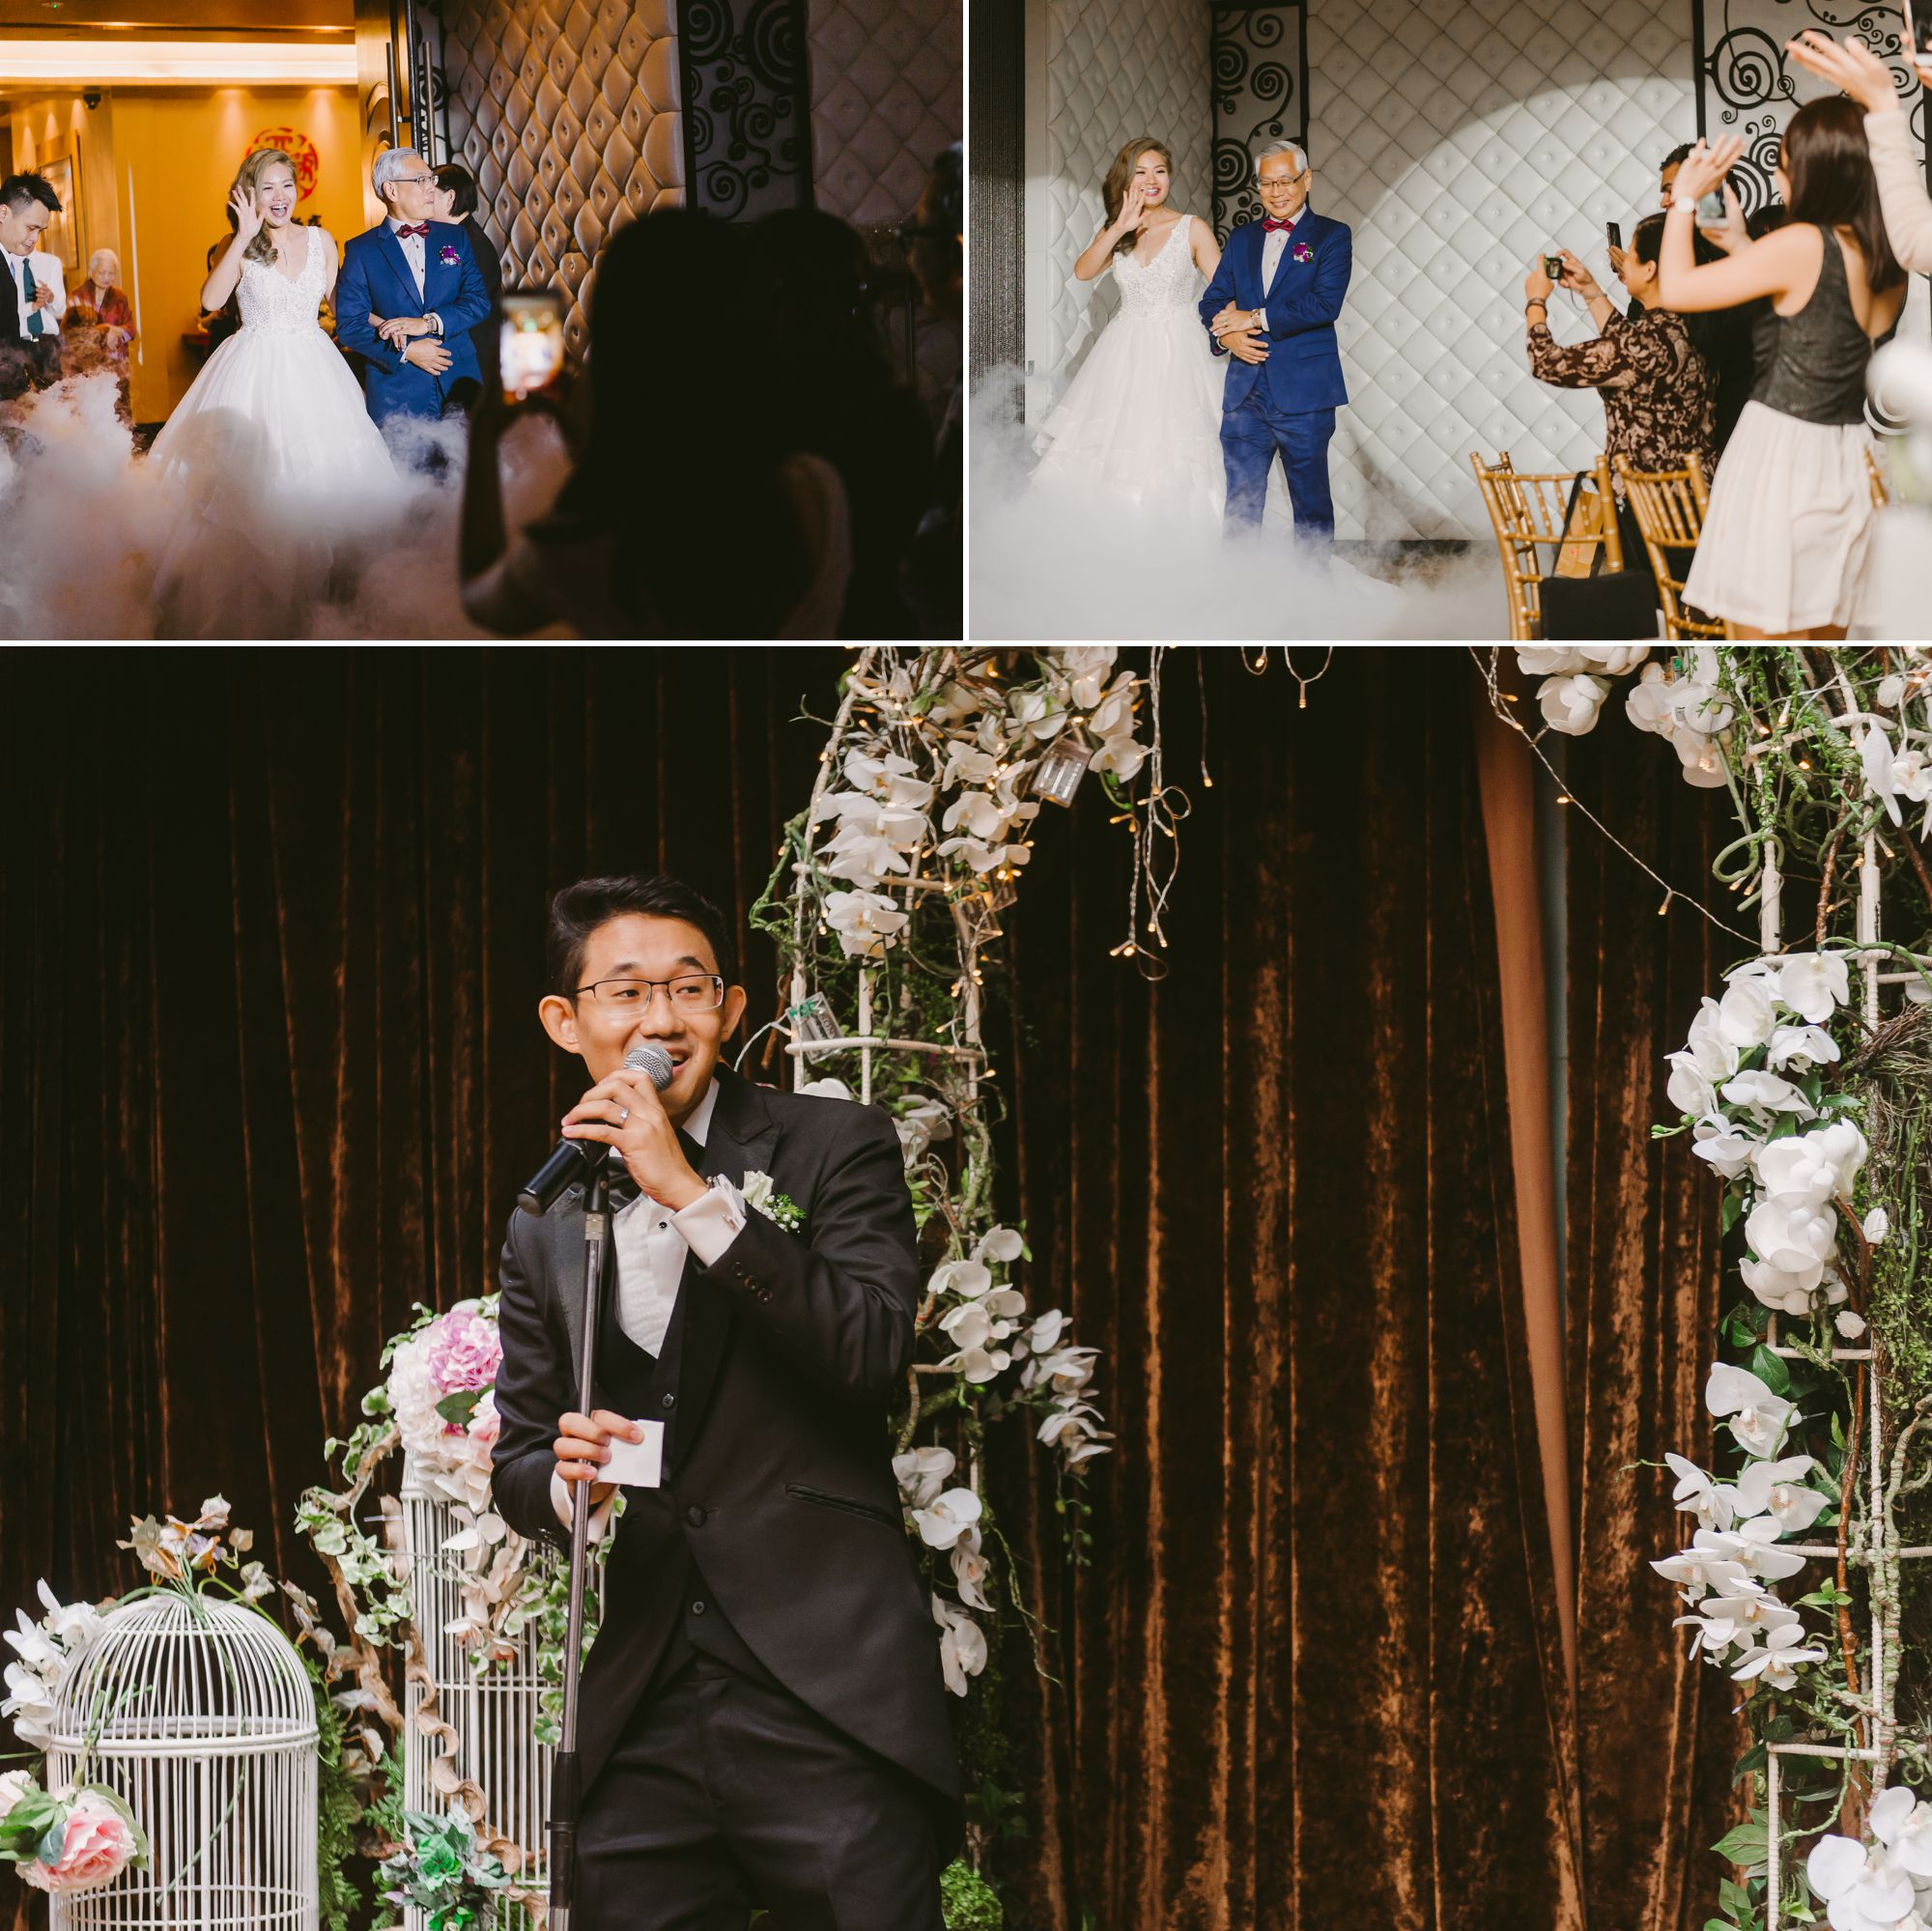 wedding_photographer_singapore 33.jpg